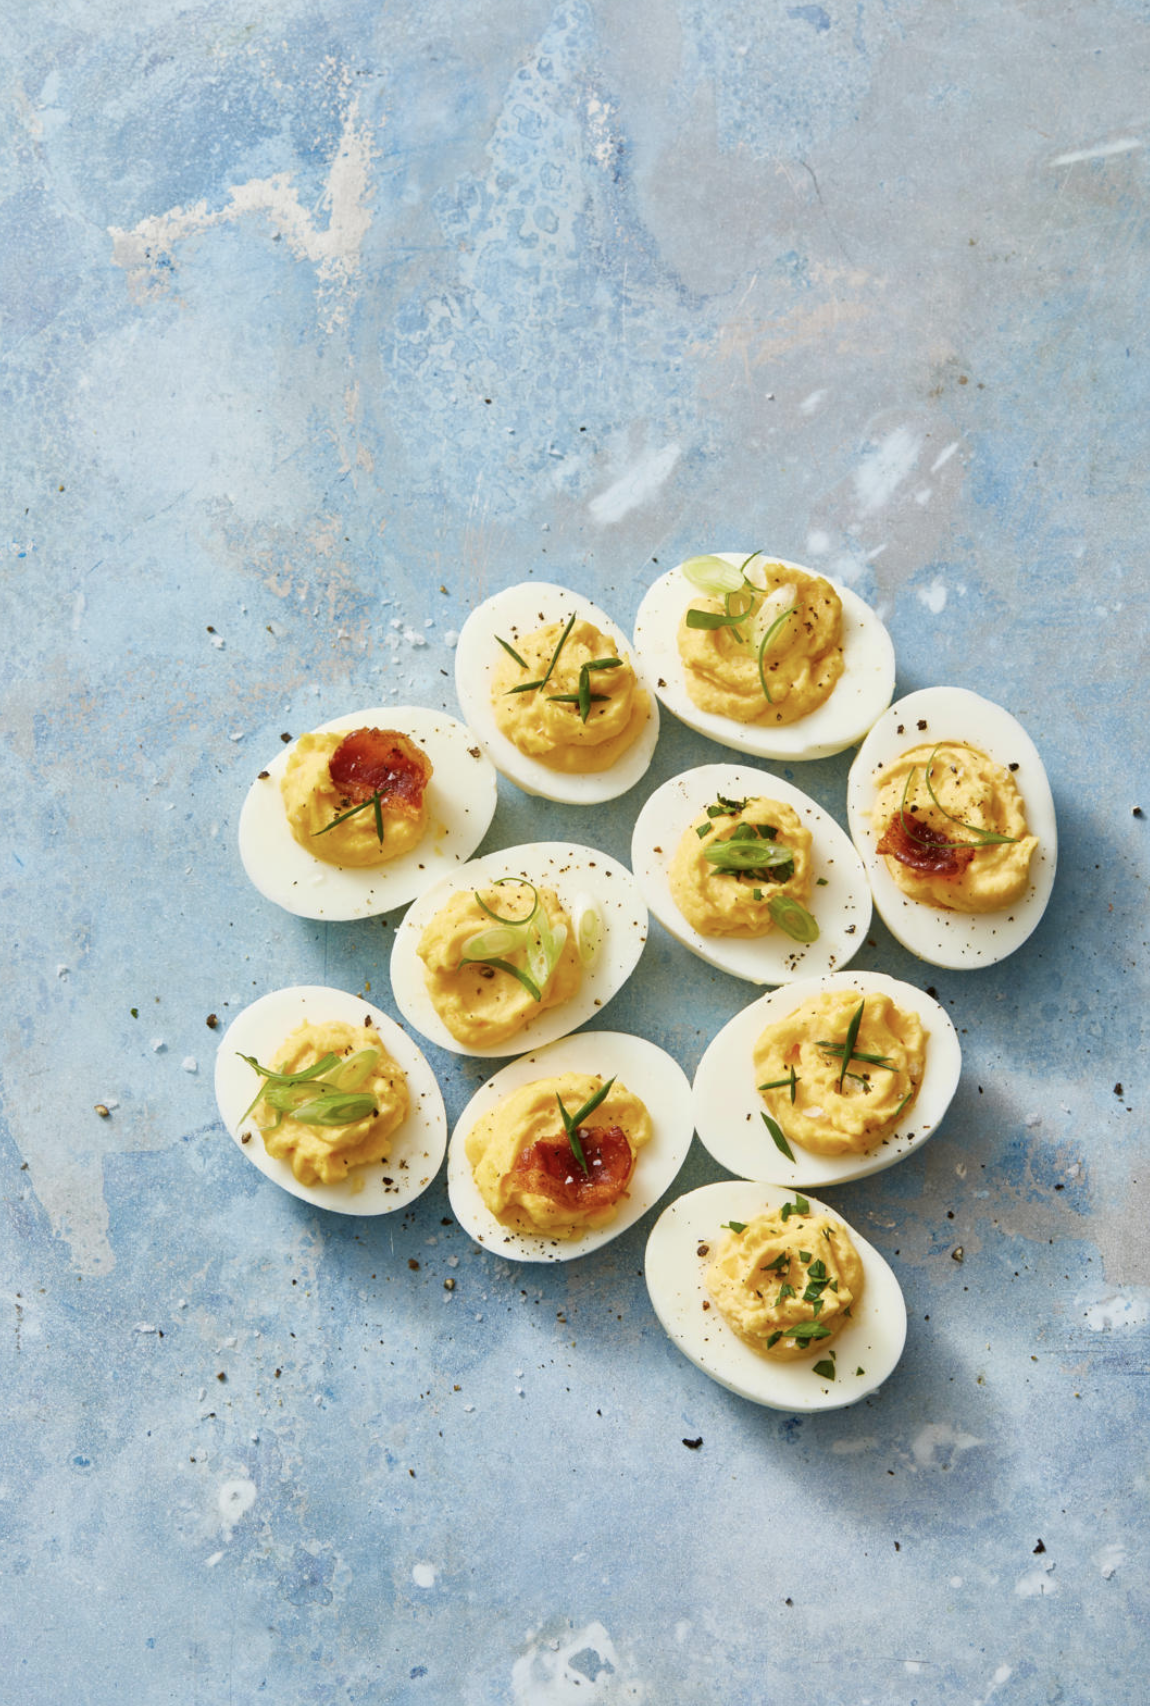 How to Make Best Deviled Eggs Ever